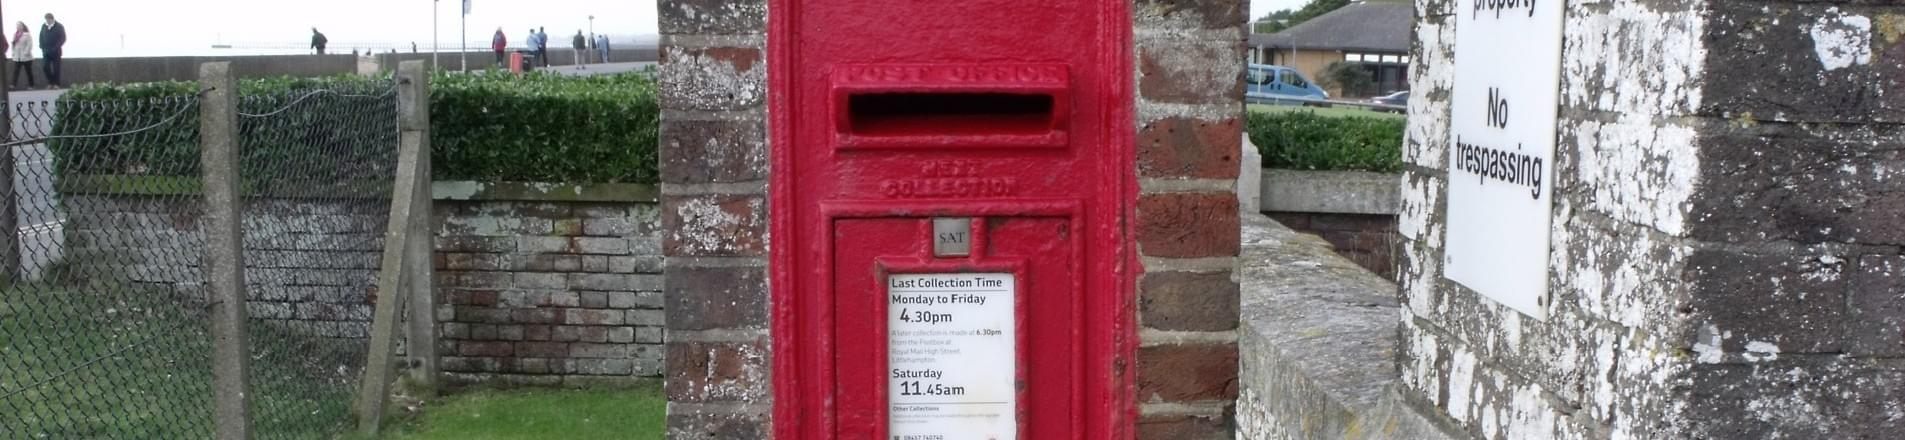 Royal Mail supports the 'stay well this winter' campaign